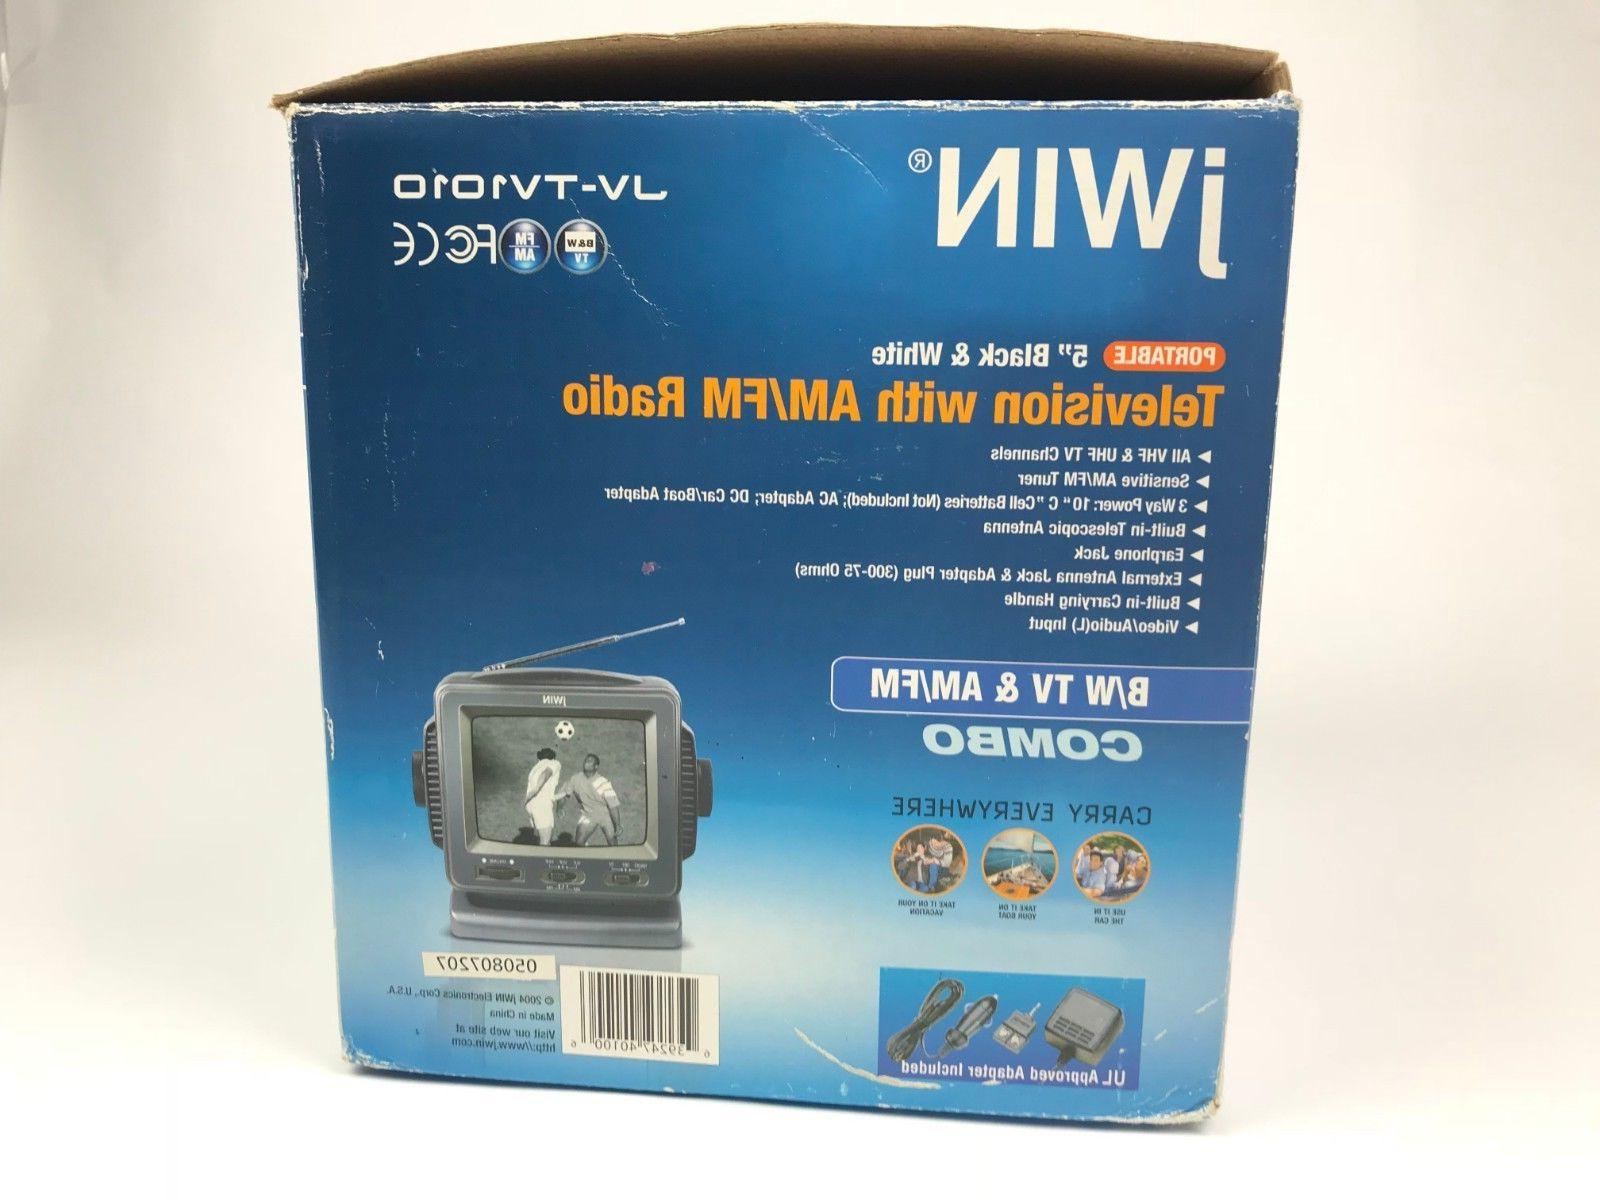 jWIN Analog White AM/FM Radio Combo Portable New